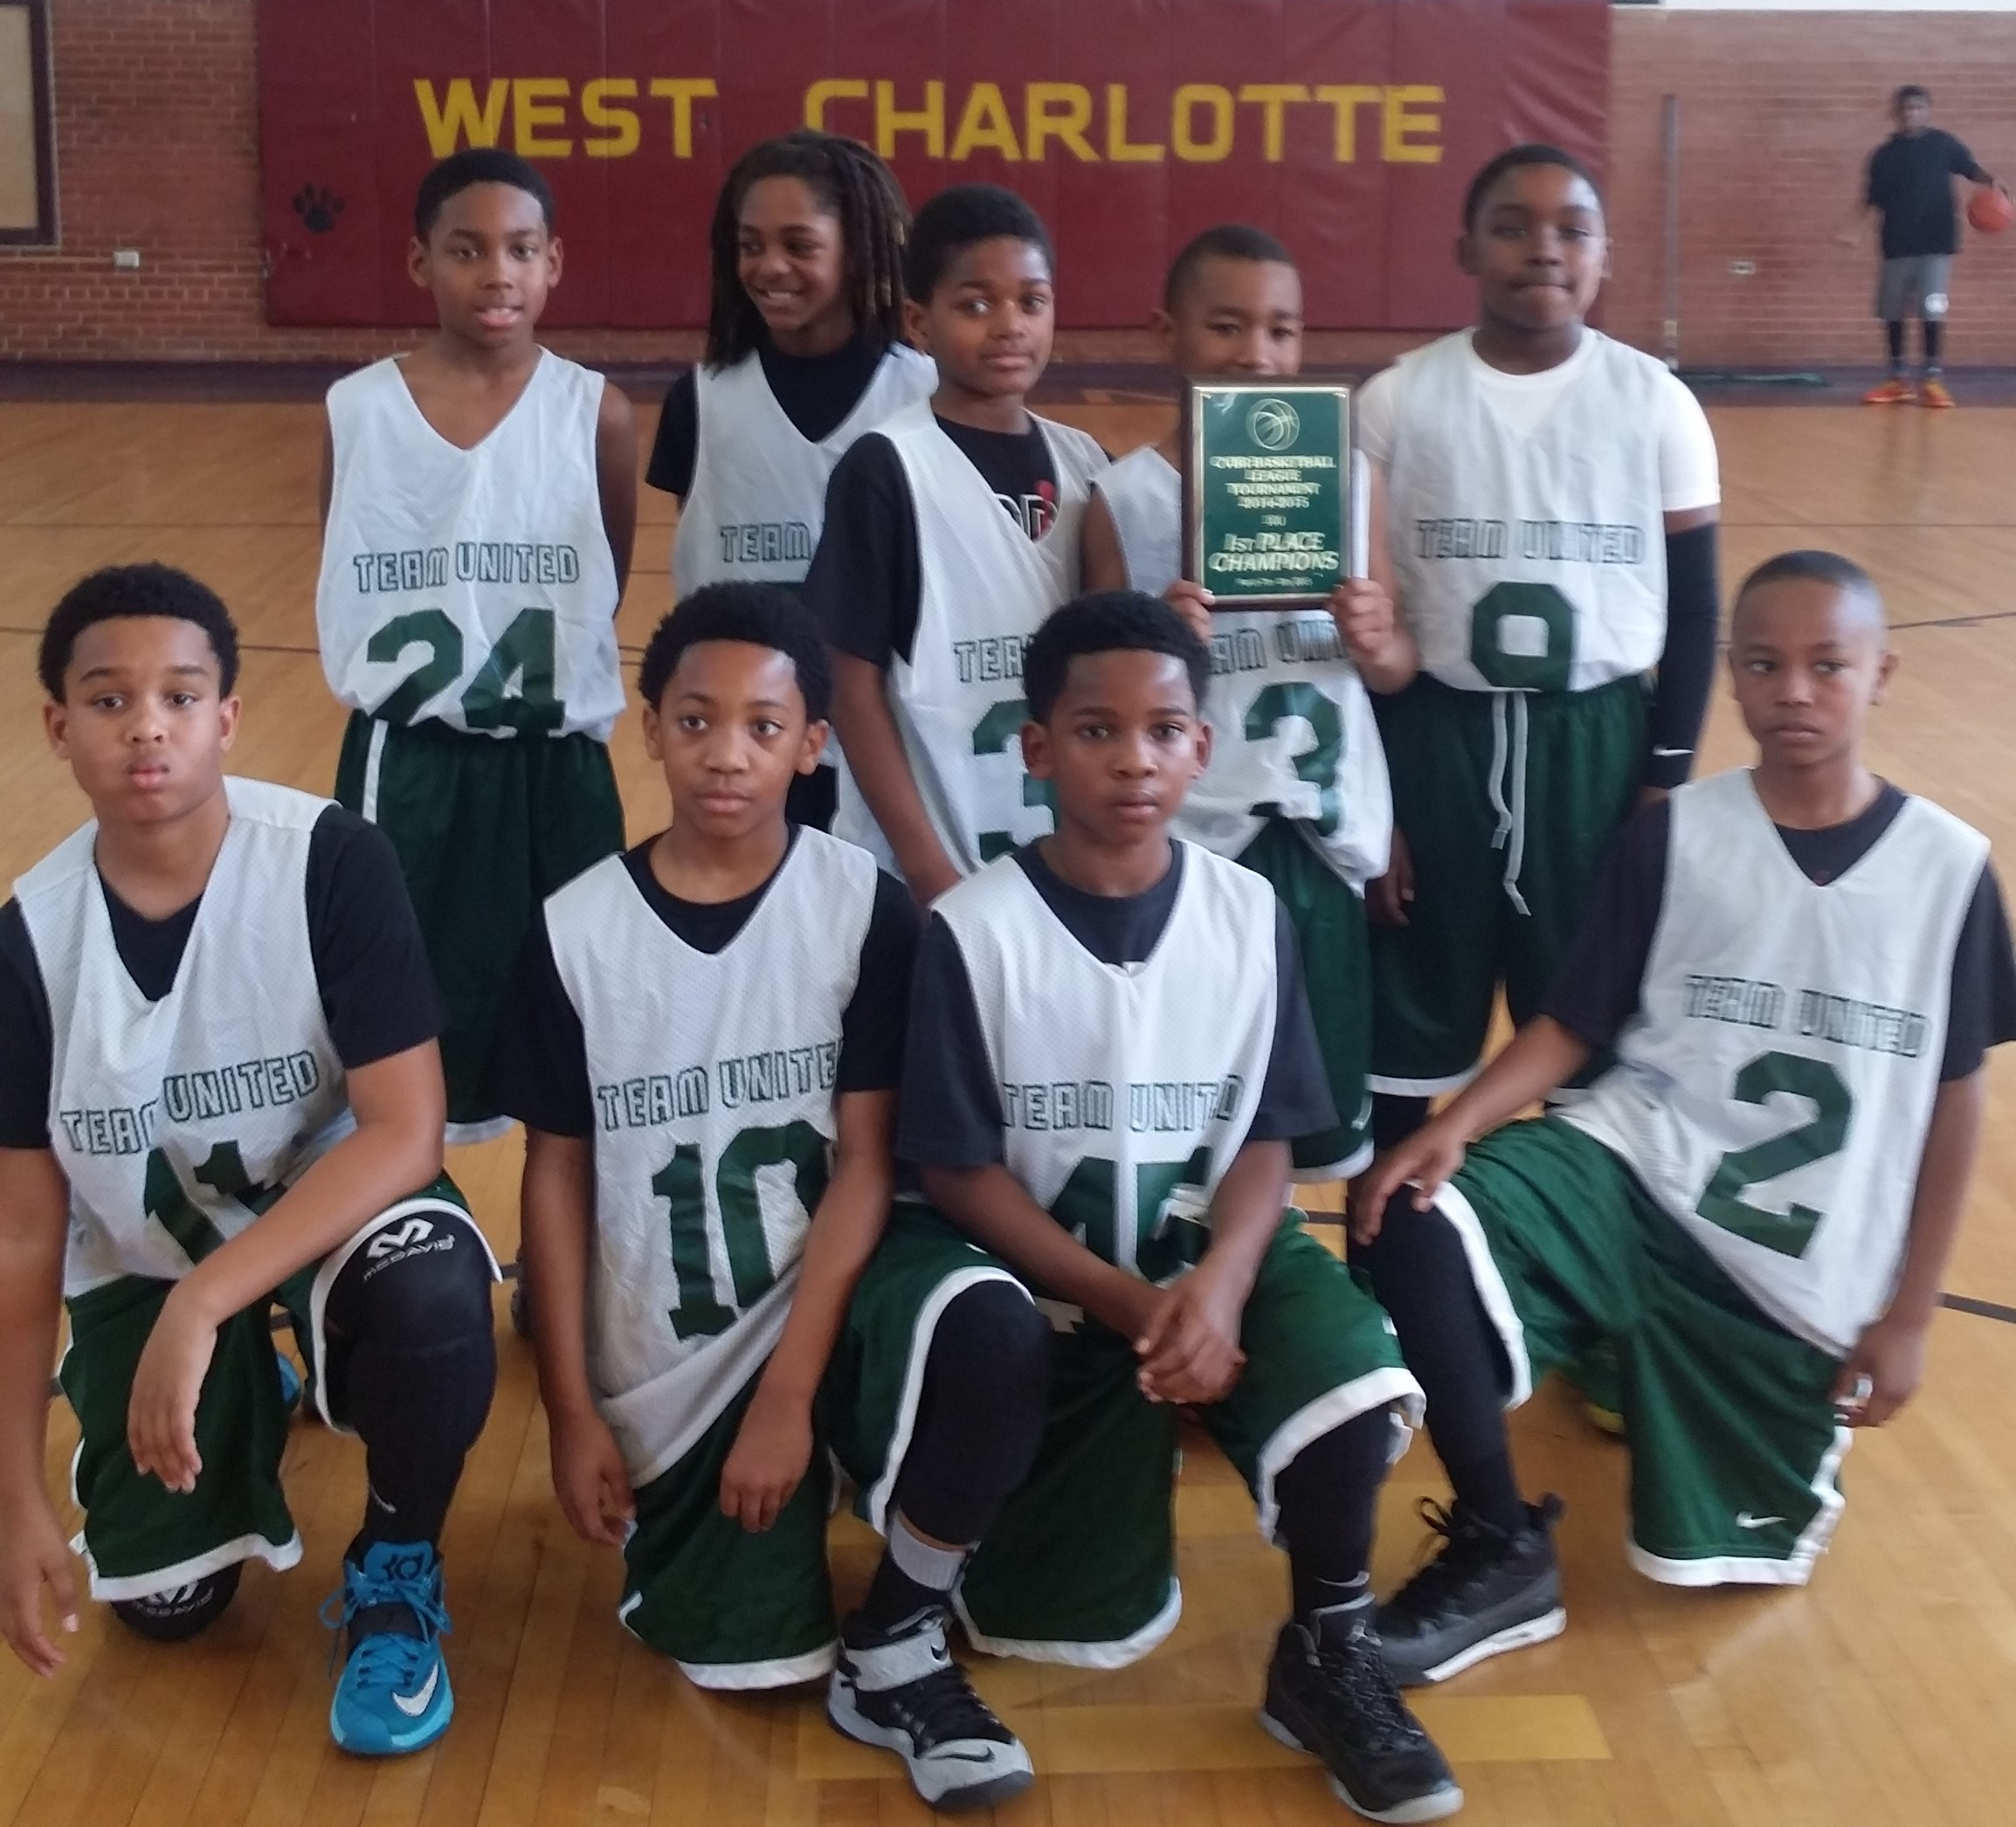 CVBR-TeamUnited-2014-10U-1stPlace.jpg